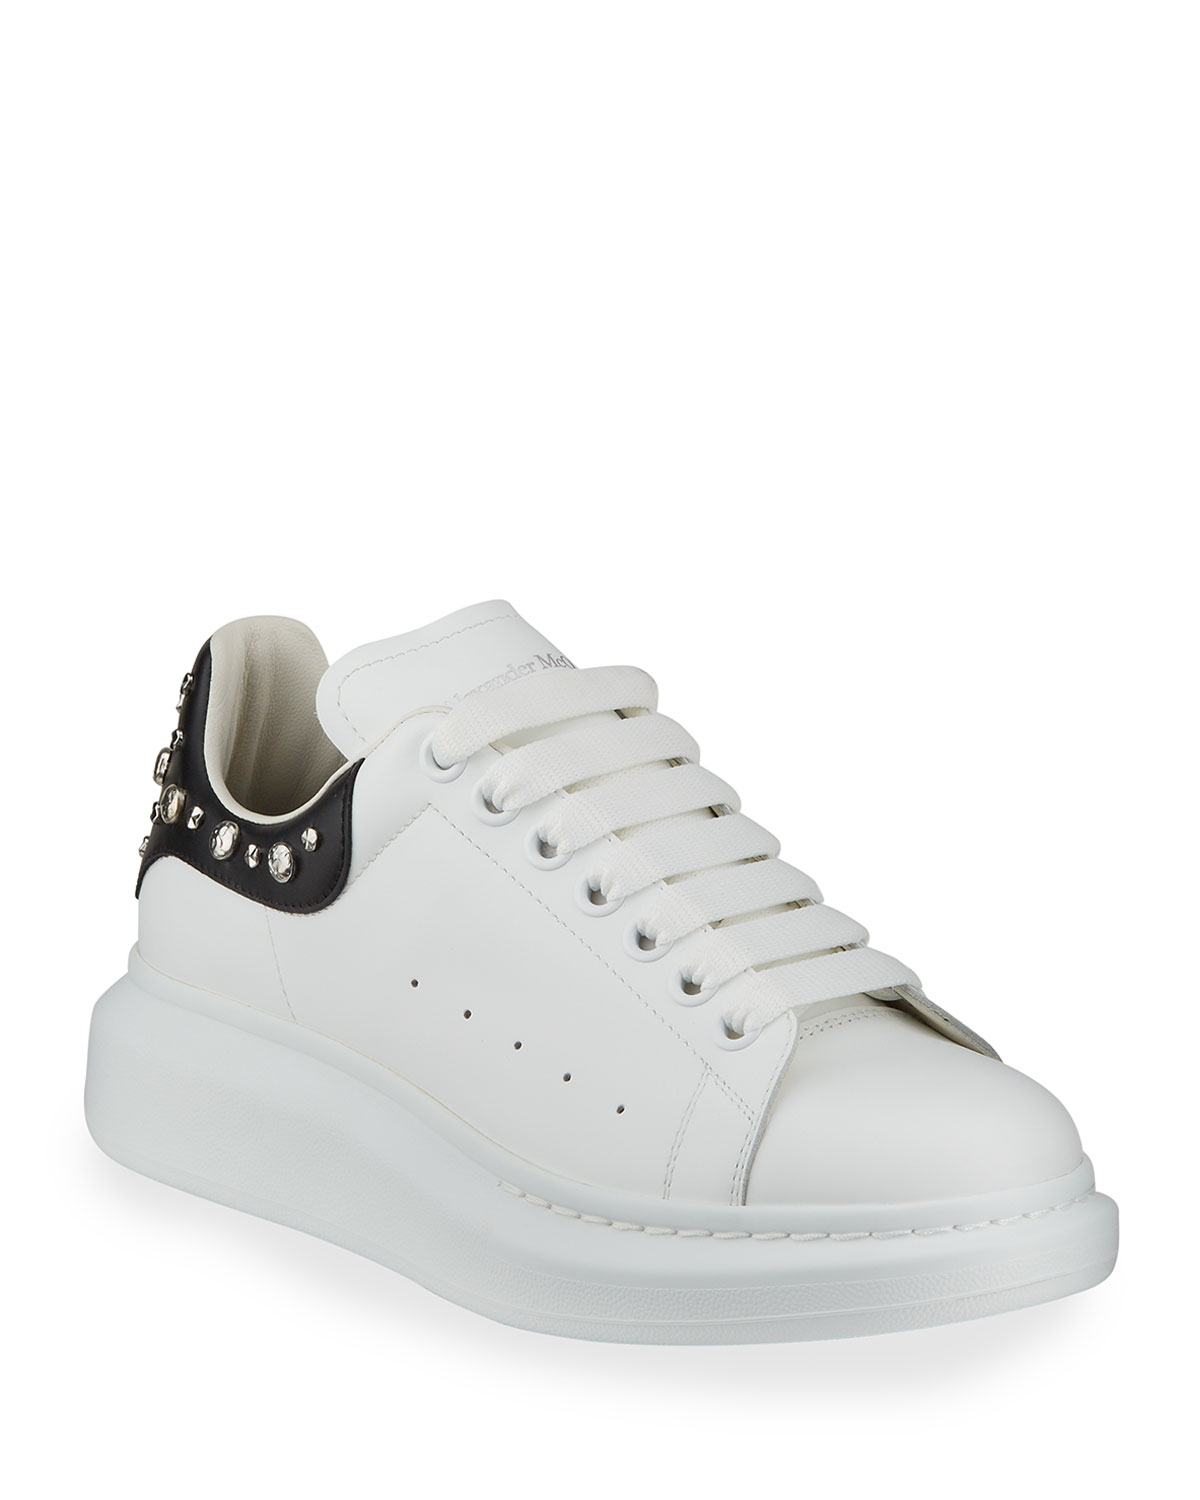 3f6a88066ffa Alexander McQueenMen s Larry Leather Lace-Up Platform Sneakers with Spiked  Trim